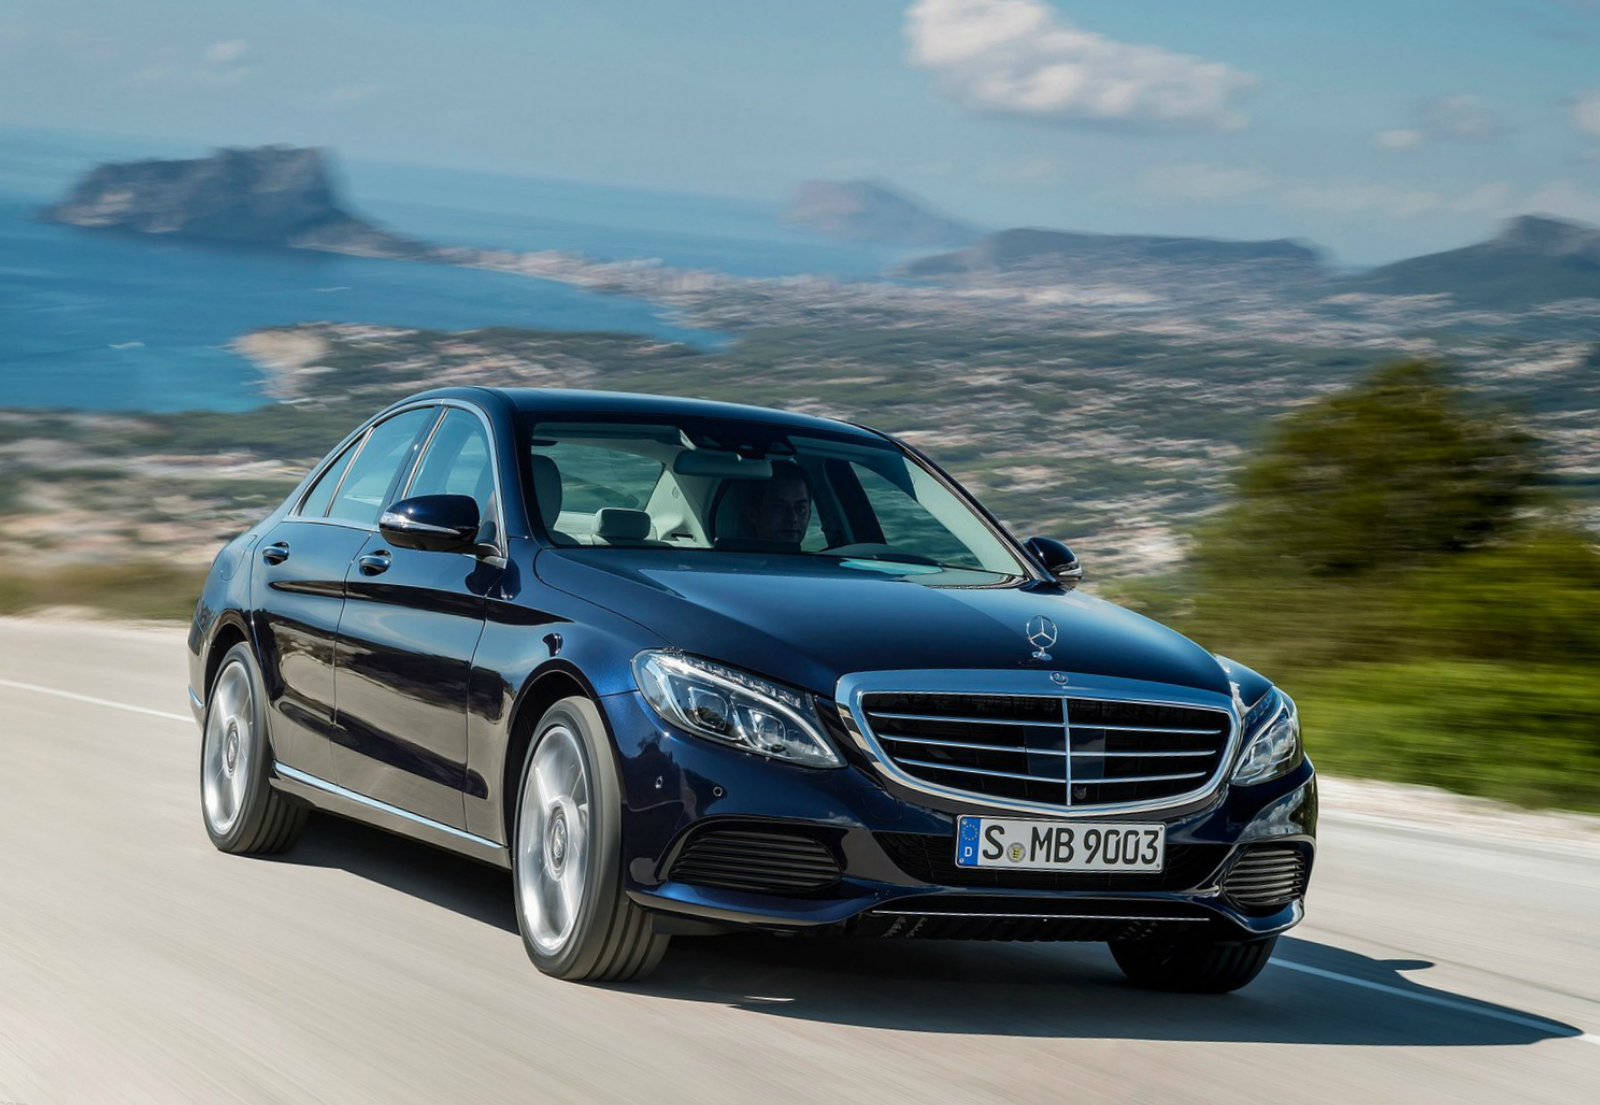 Mercedes benz c class 2015 reviews mercedes benz c class for Mercedes benz c300 reviews